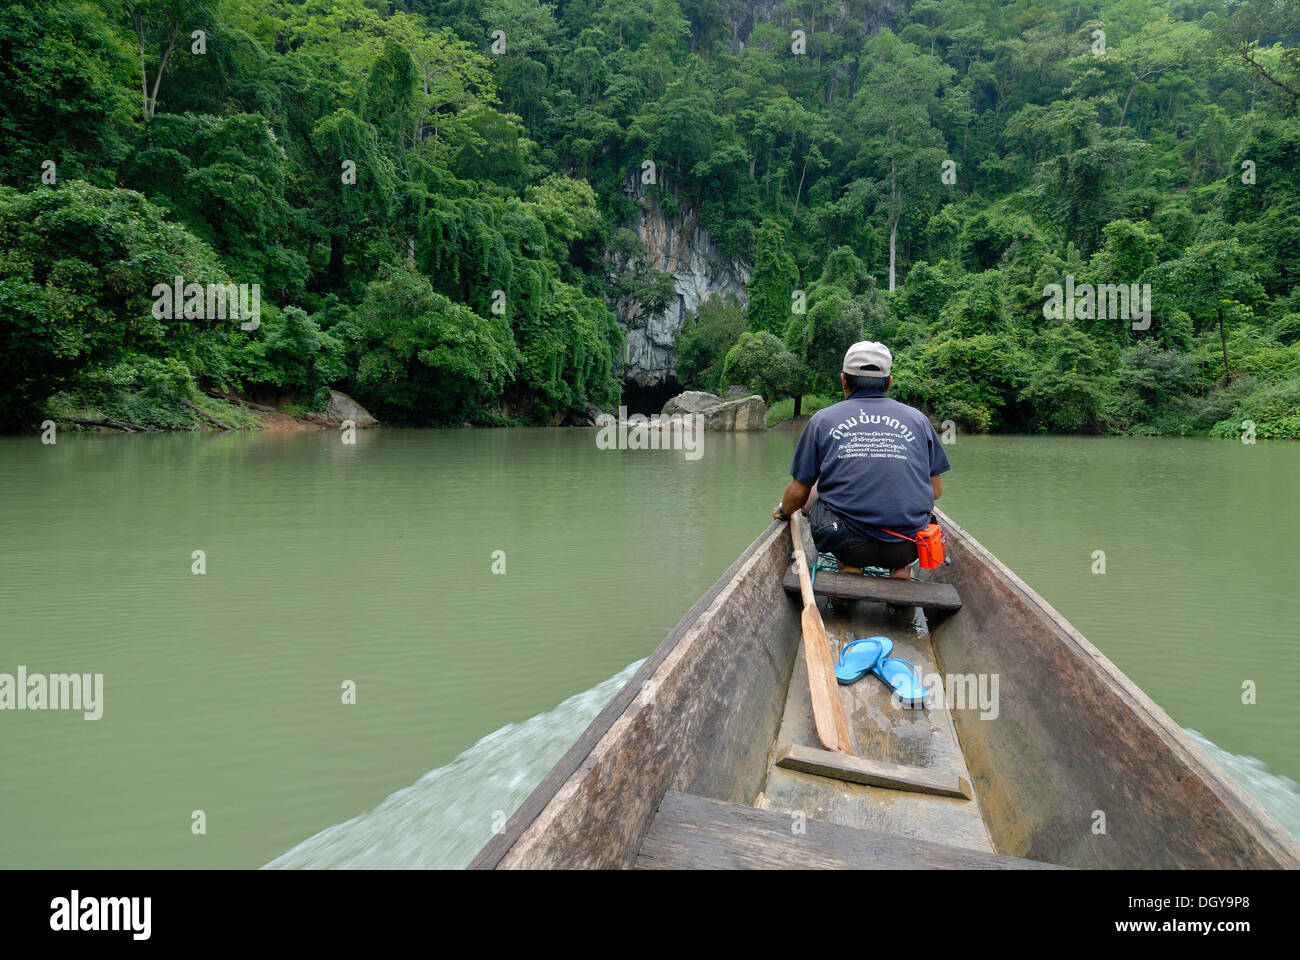 Laotian man with a simple long boat at the entrance of the 7.5 km long cave of Tham Kong Lor, in the dense tropical rain forest - Stock Image